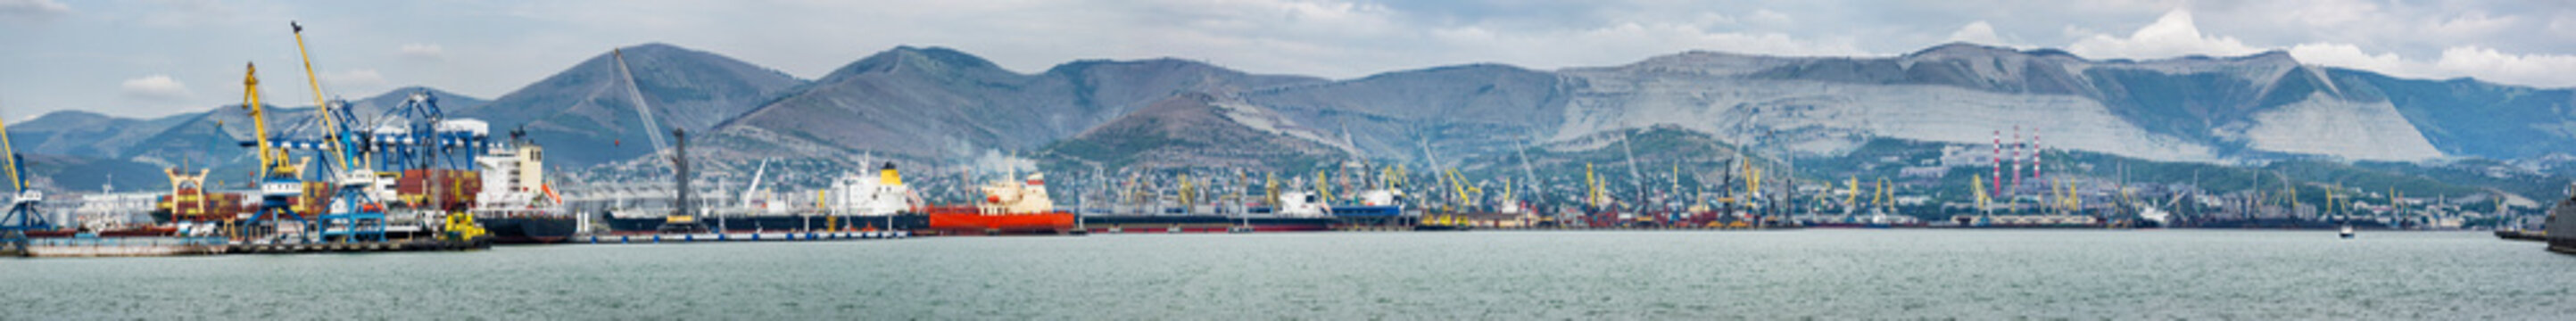 Commercial, industrial port, at the foot of the mountains, panorama